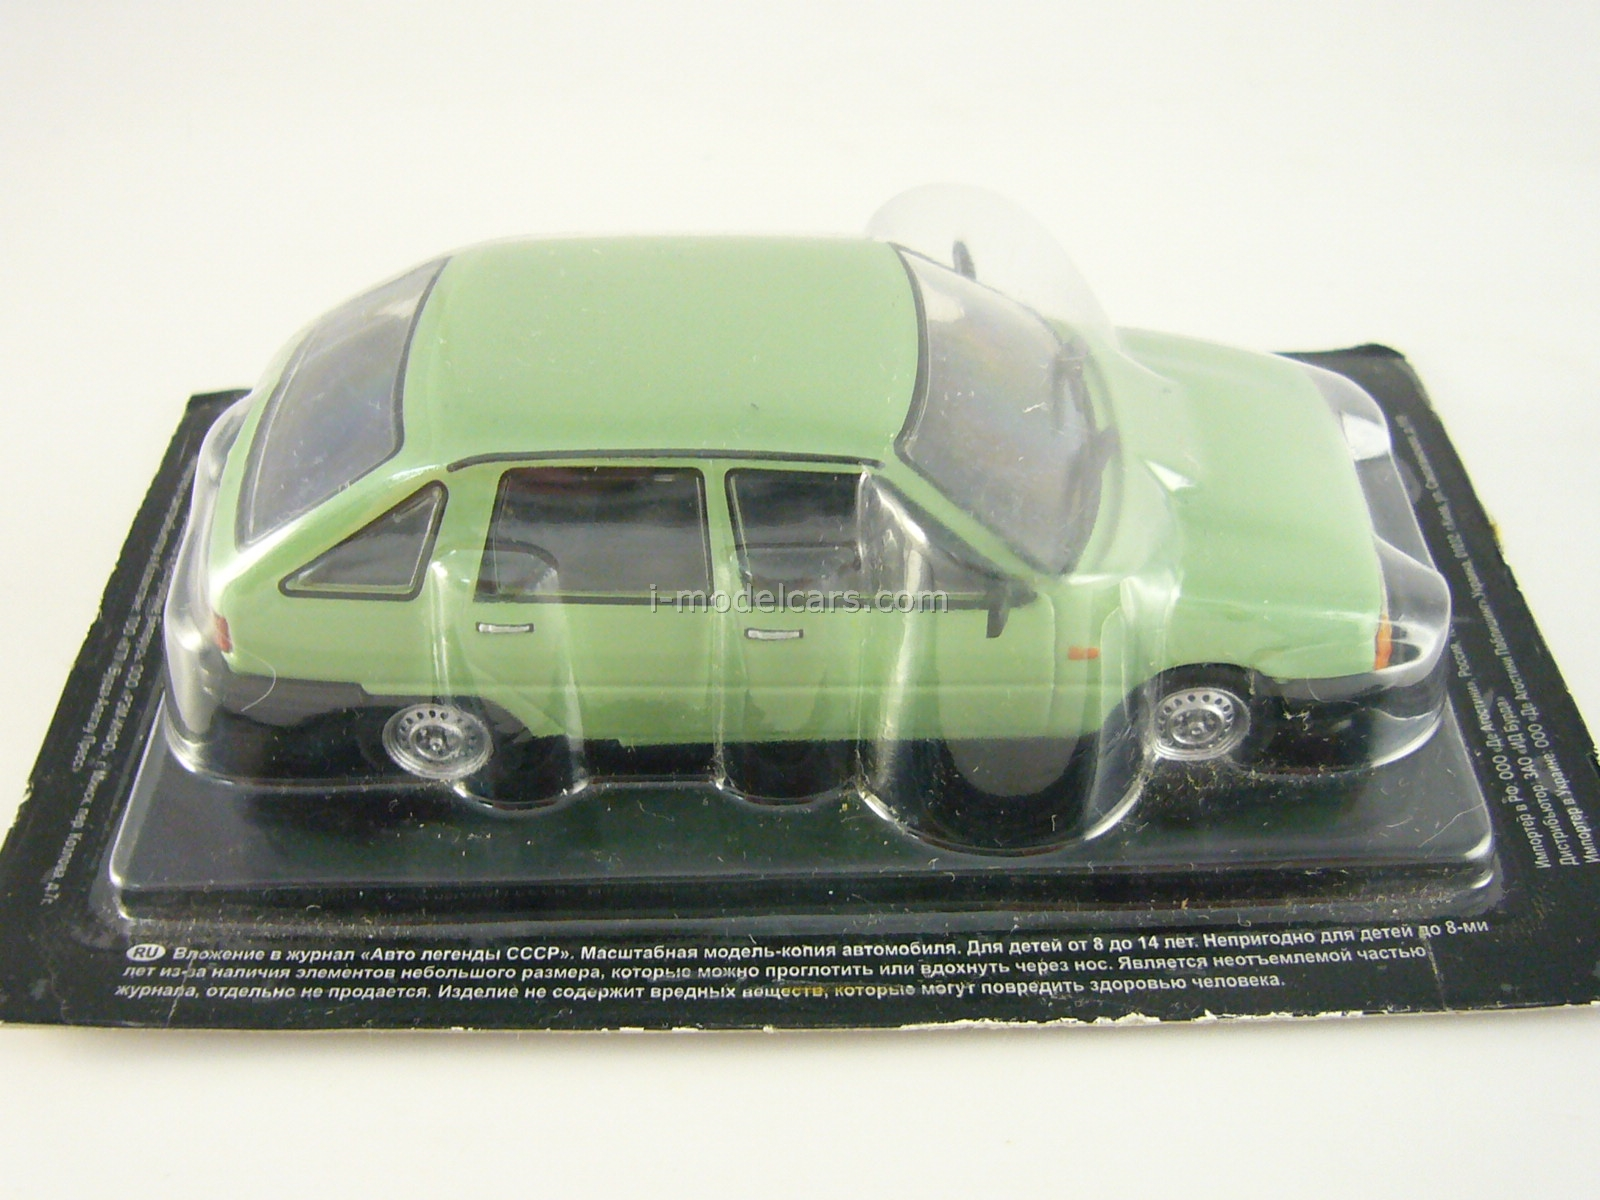 IZH-2126 Orbita light green 1:43 DeAgostini Auto Legends USSR #60